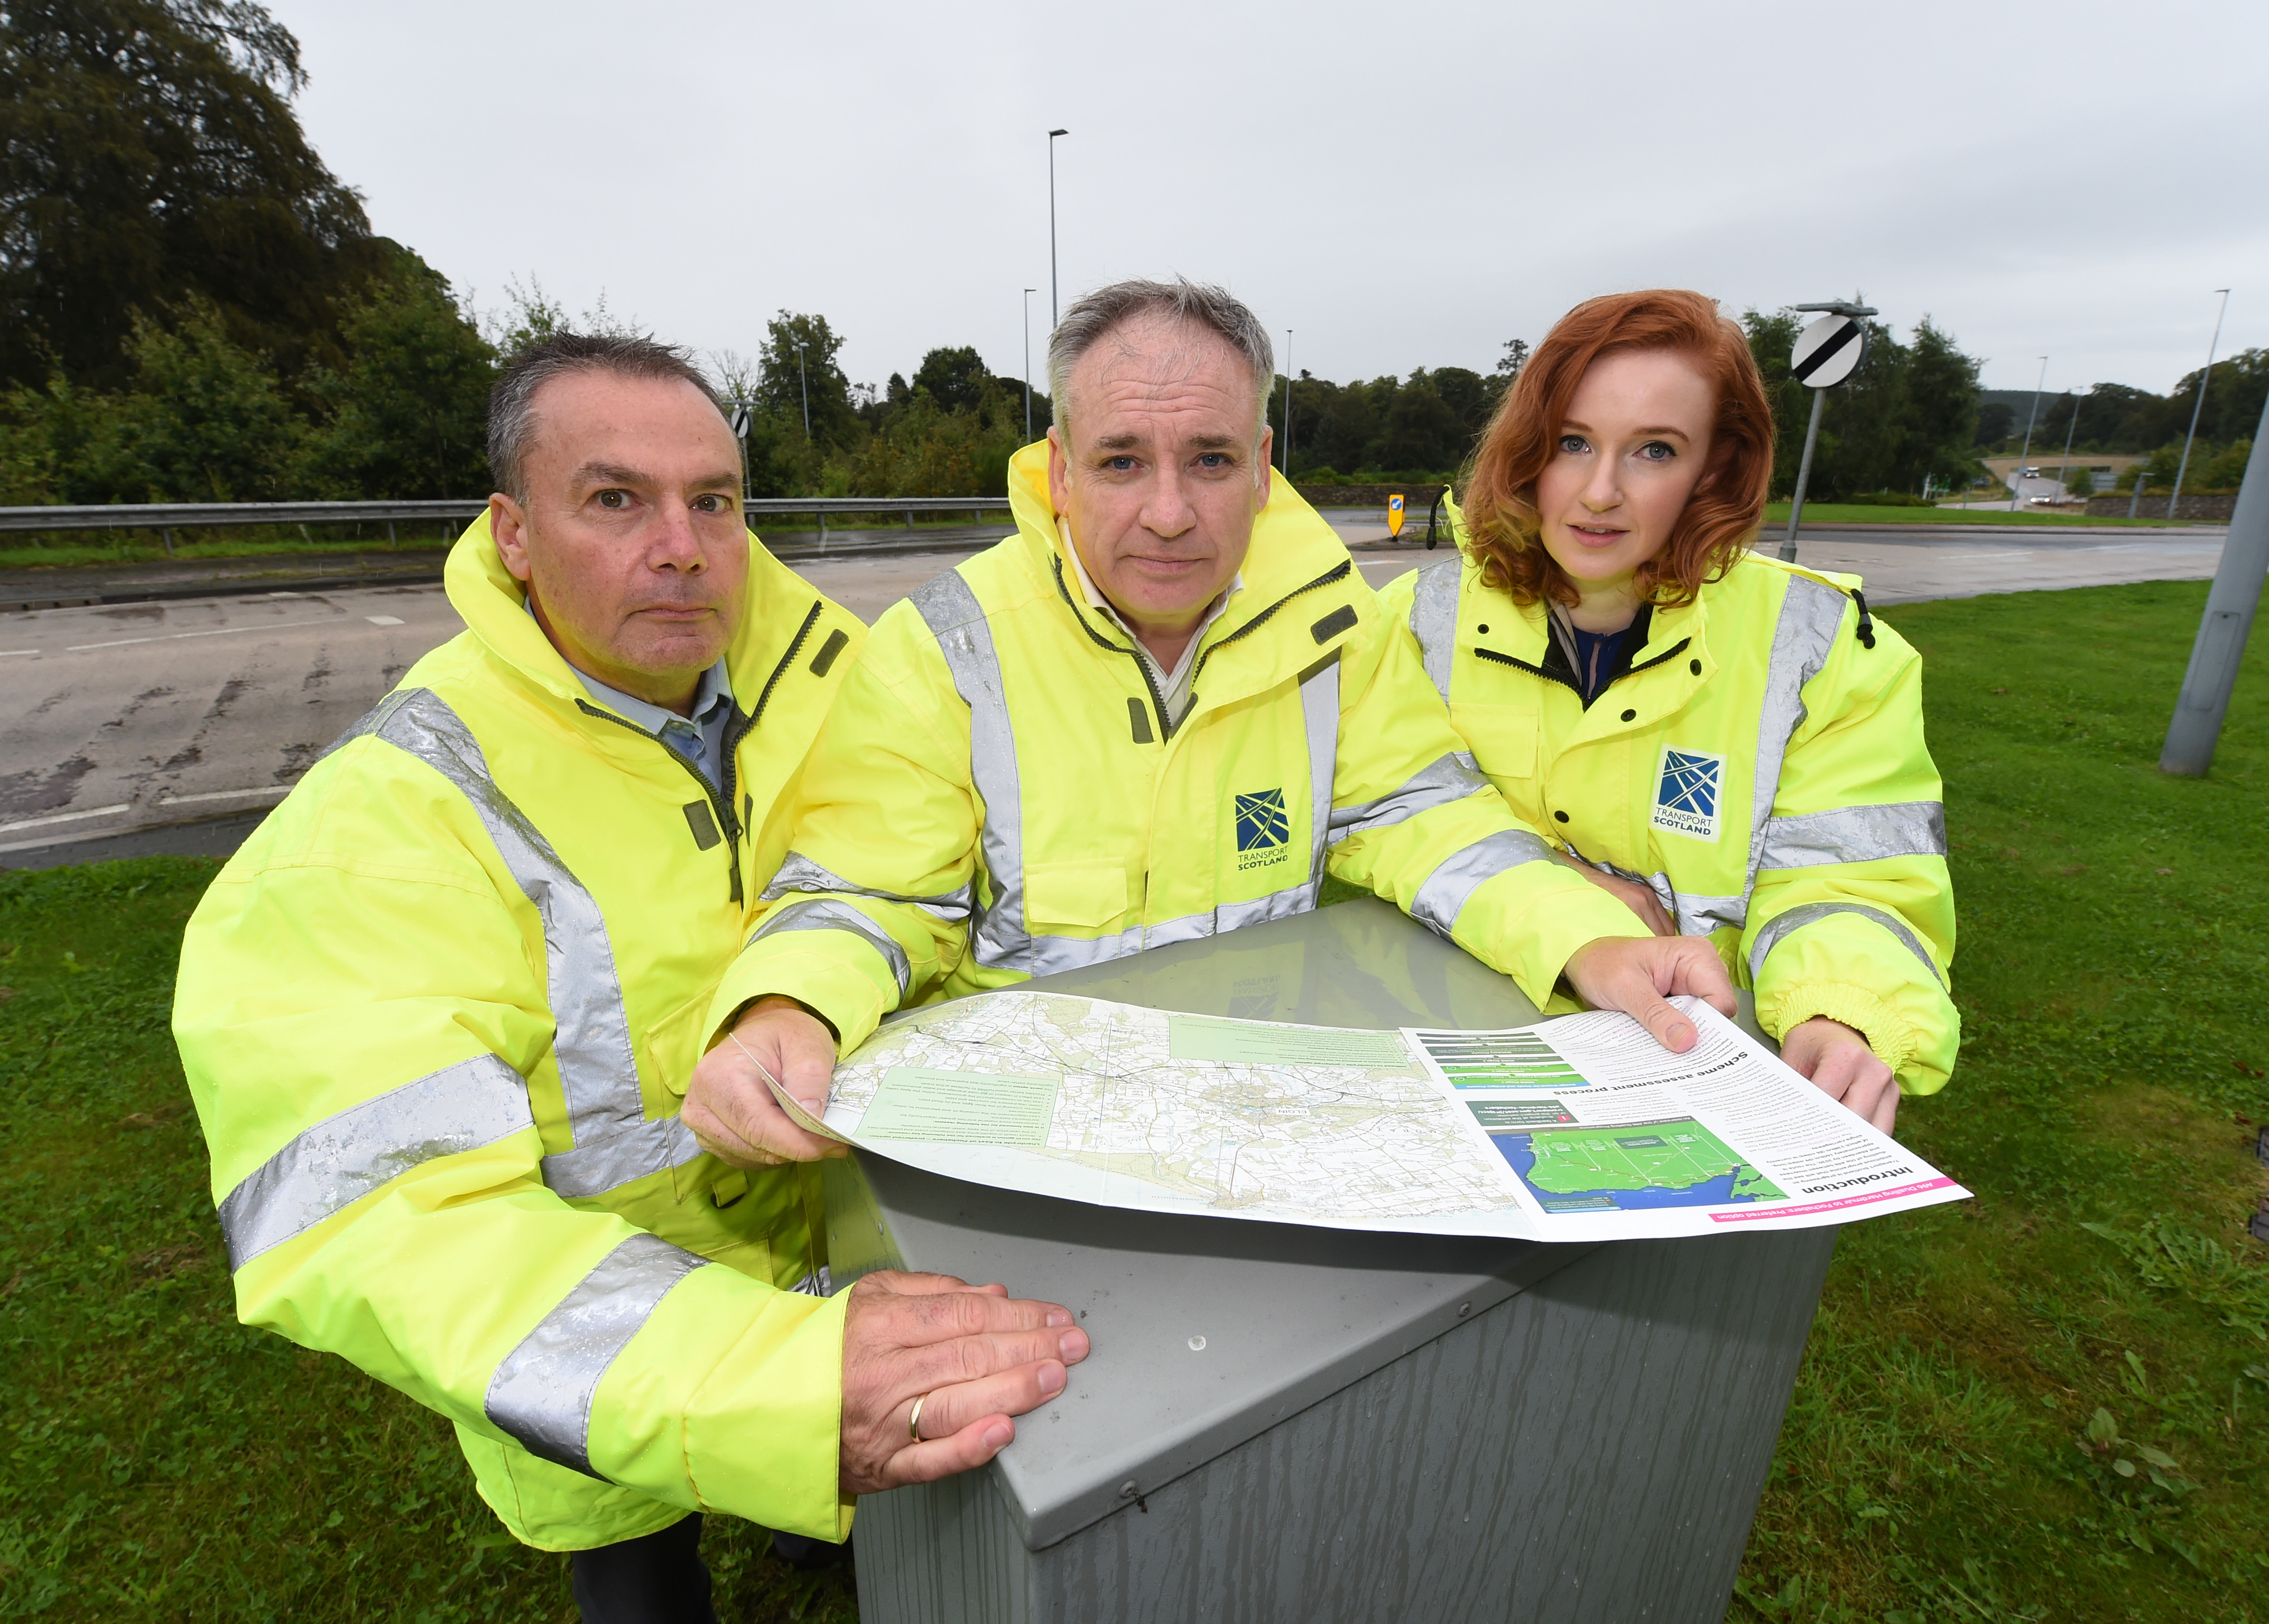 The upgraded A96 is expected to be completed by 2030. Pictured: Mott MacDonald Sweco's contract director Iain Scott, Moray MSP Richard Lochhead and Transport Scotland project manager Niamh Callaghan.